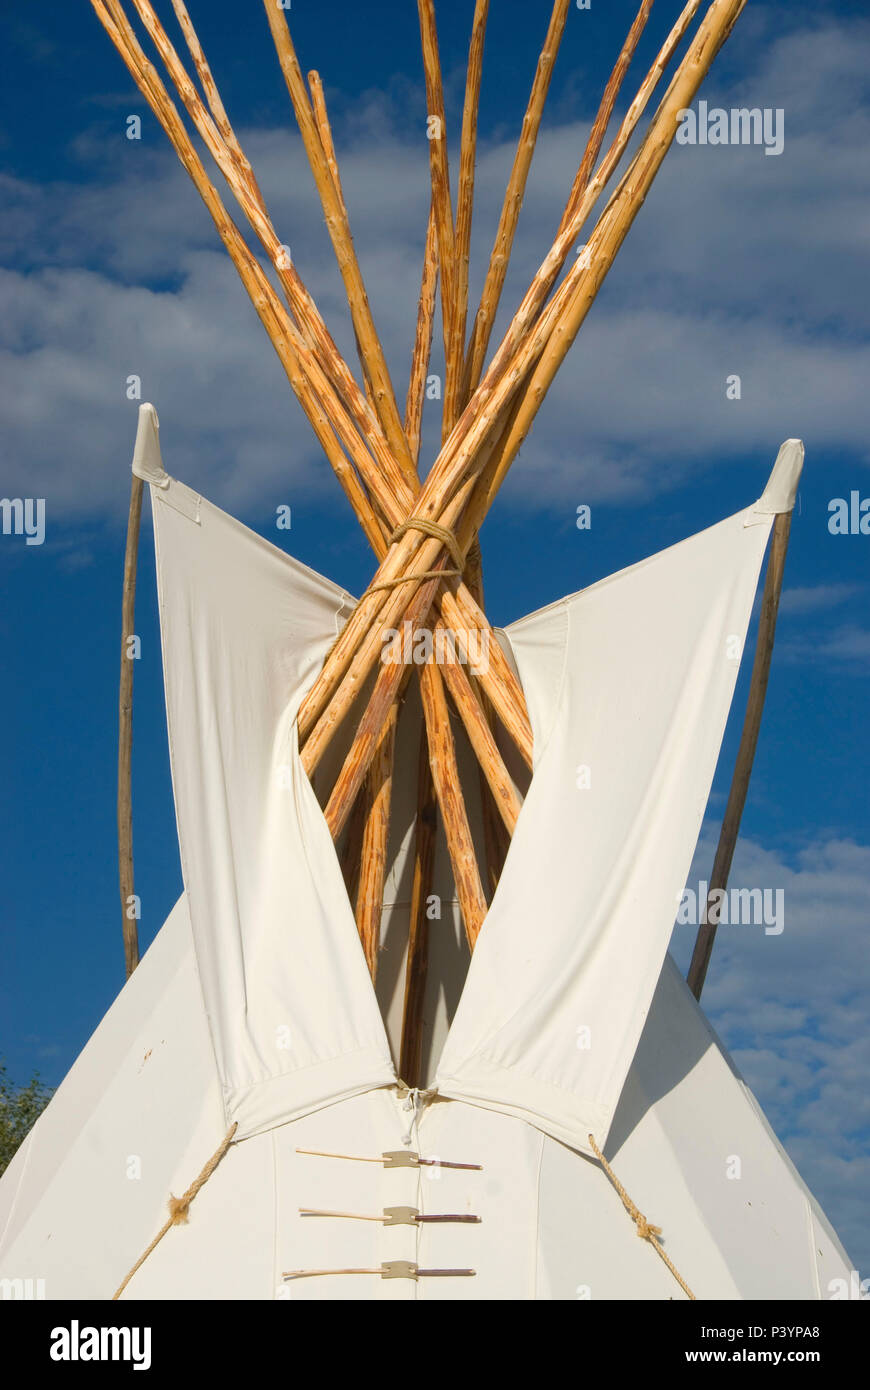 Tepee, Grant-Kohrs Ranch National Historic Site, Montana Stock Photo